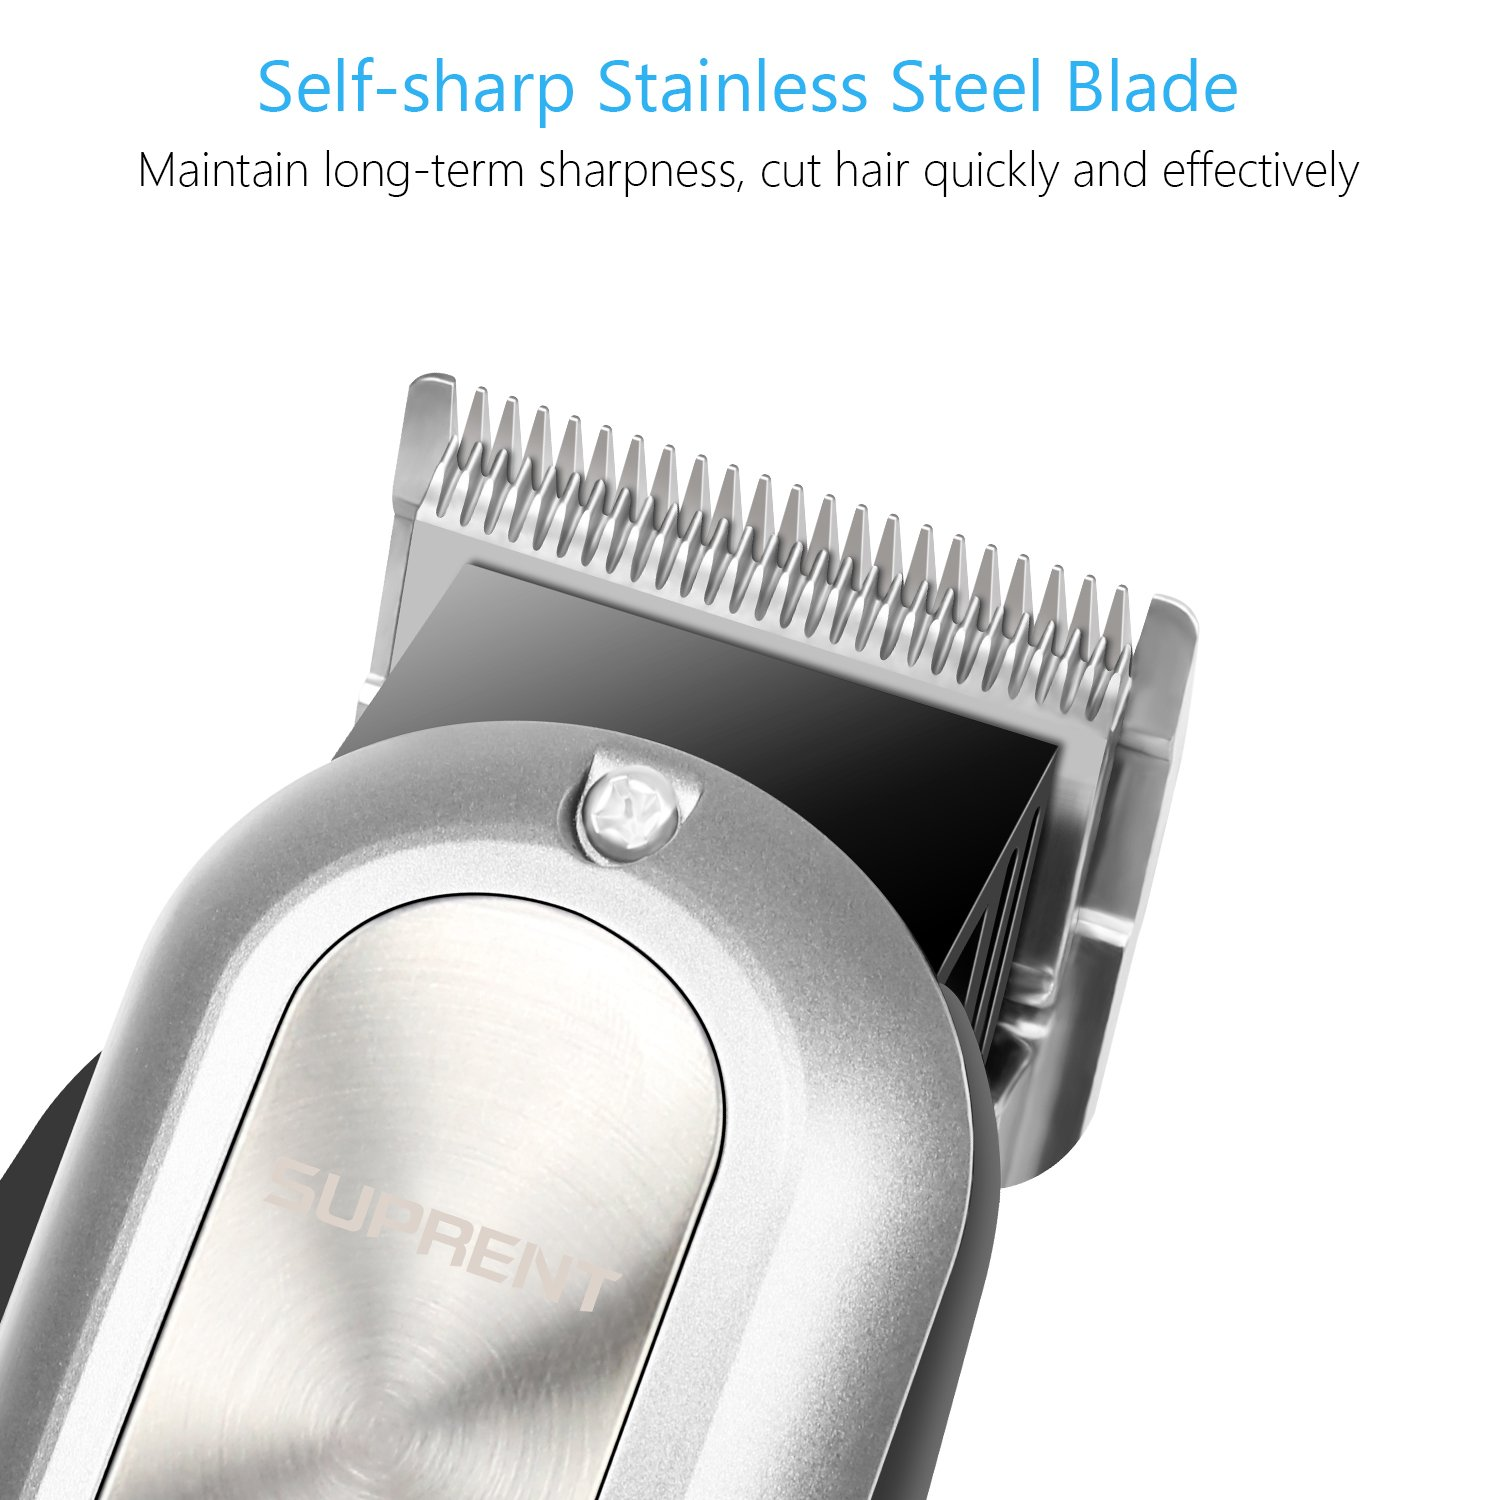 SUPRENT Cordless Corded Hair Clippers for Men Professional Hair Cutting Kit with 2000mAh Lithium Ion, Titanium Ceramic Blade, Hair Trimmer with Lock-In Length Silver